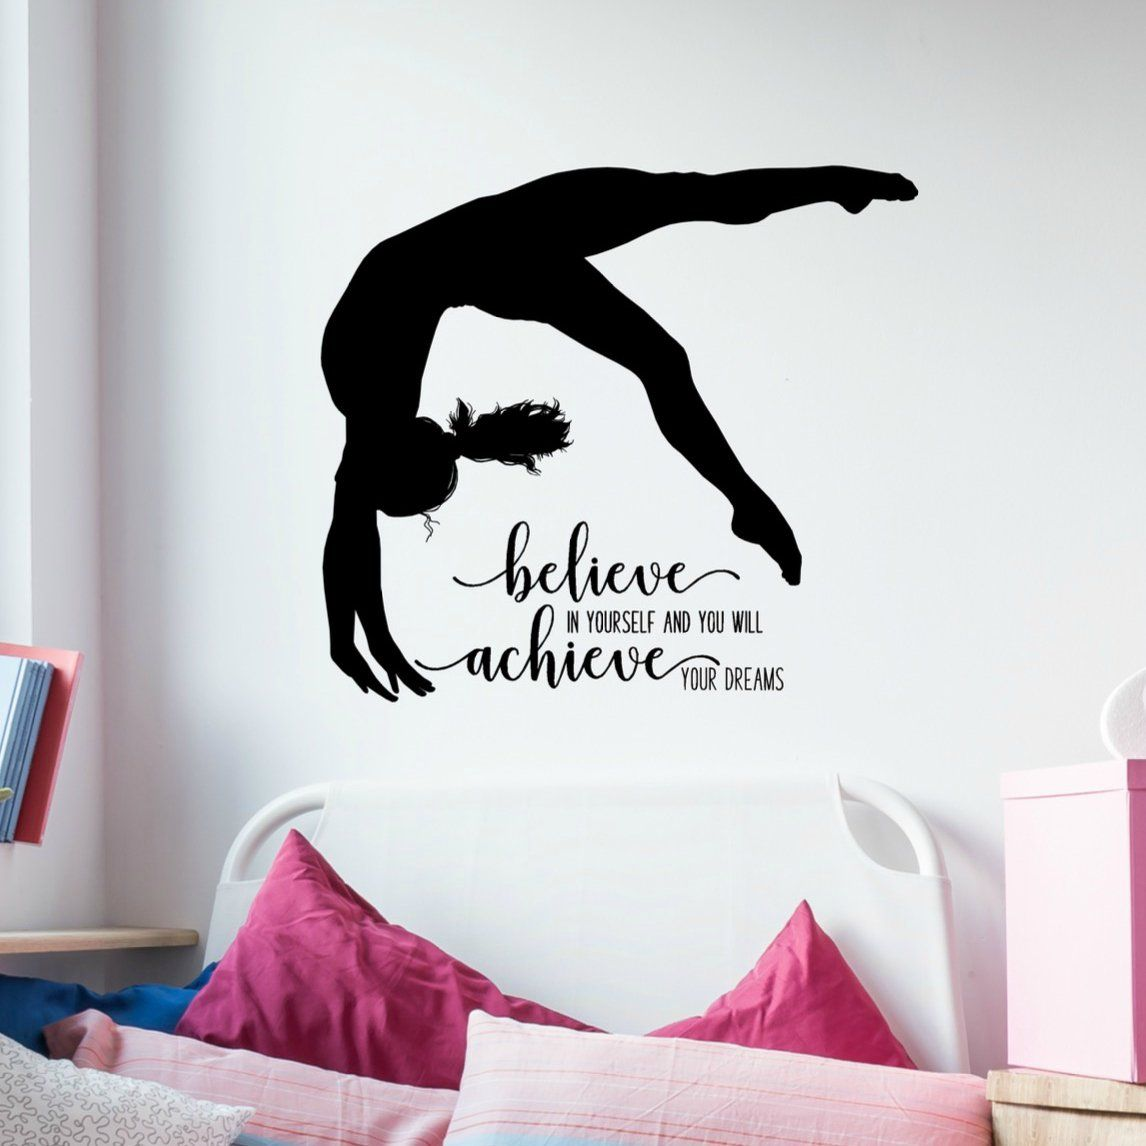 Gymnastics Wall Decals - Inspirational Quotes for Girls Boys or girls room decorations that are sure...